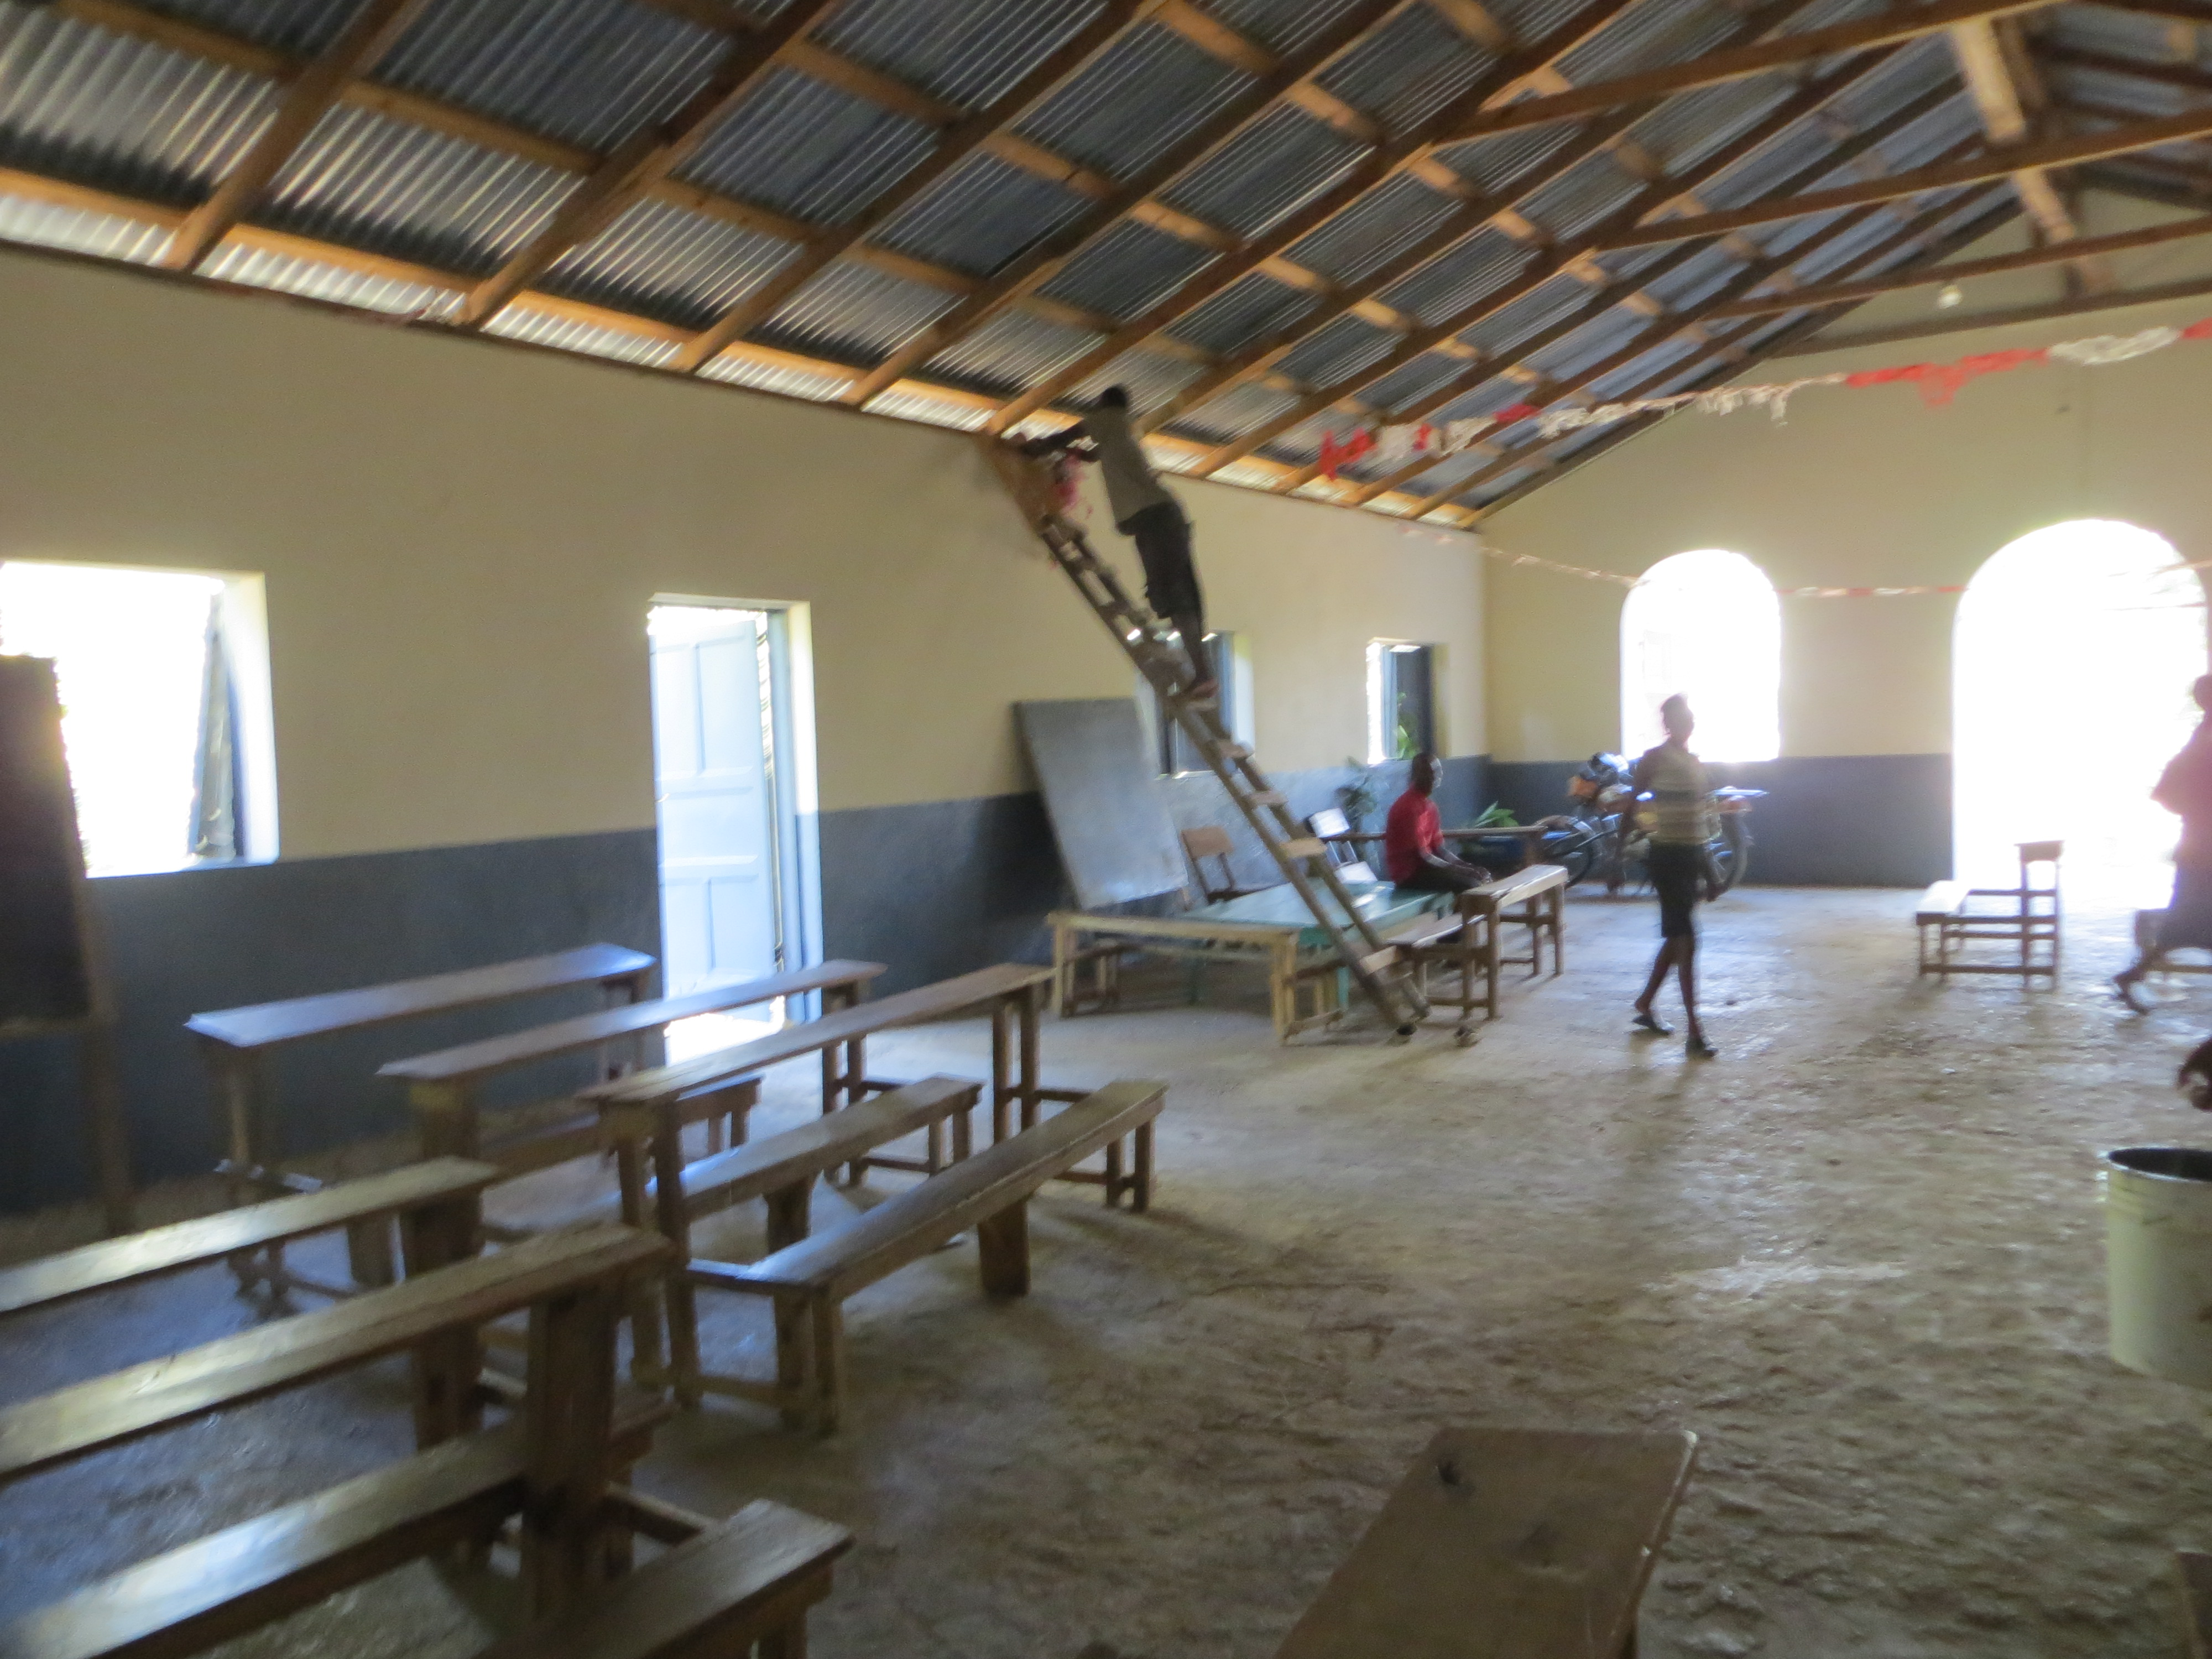 Painting the Sanctuary